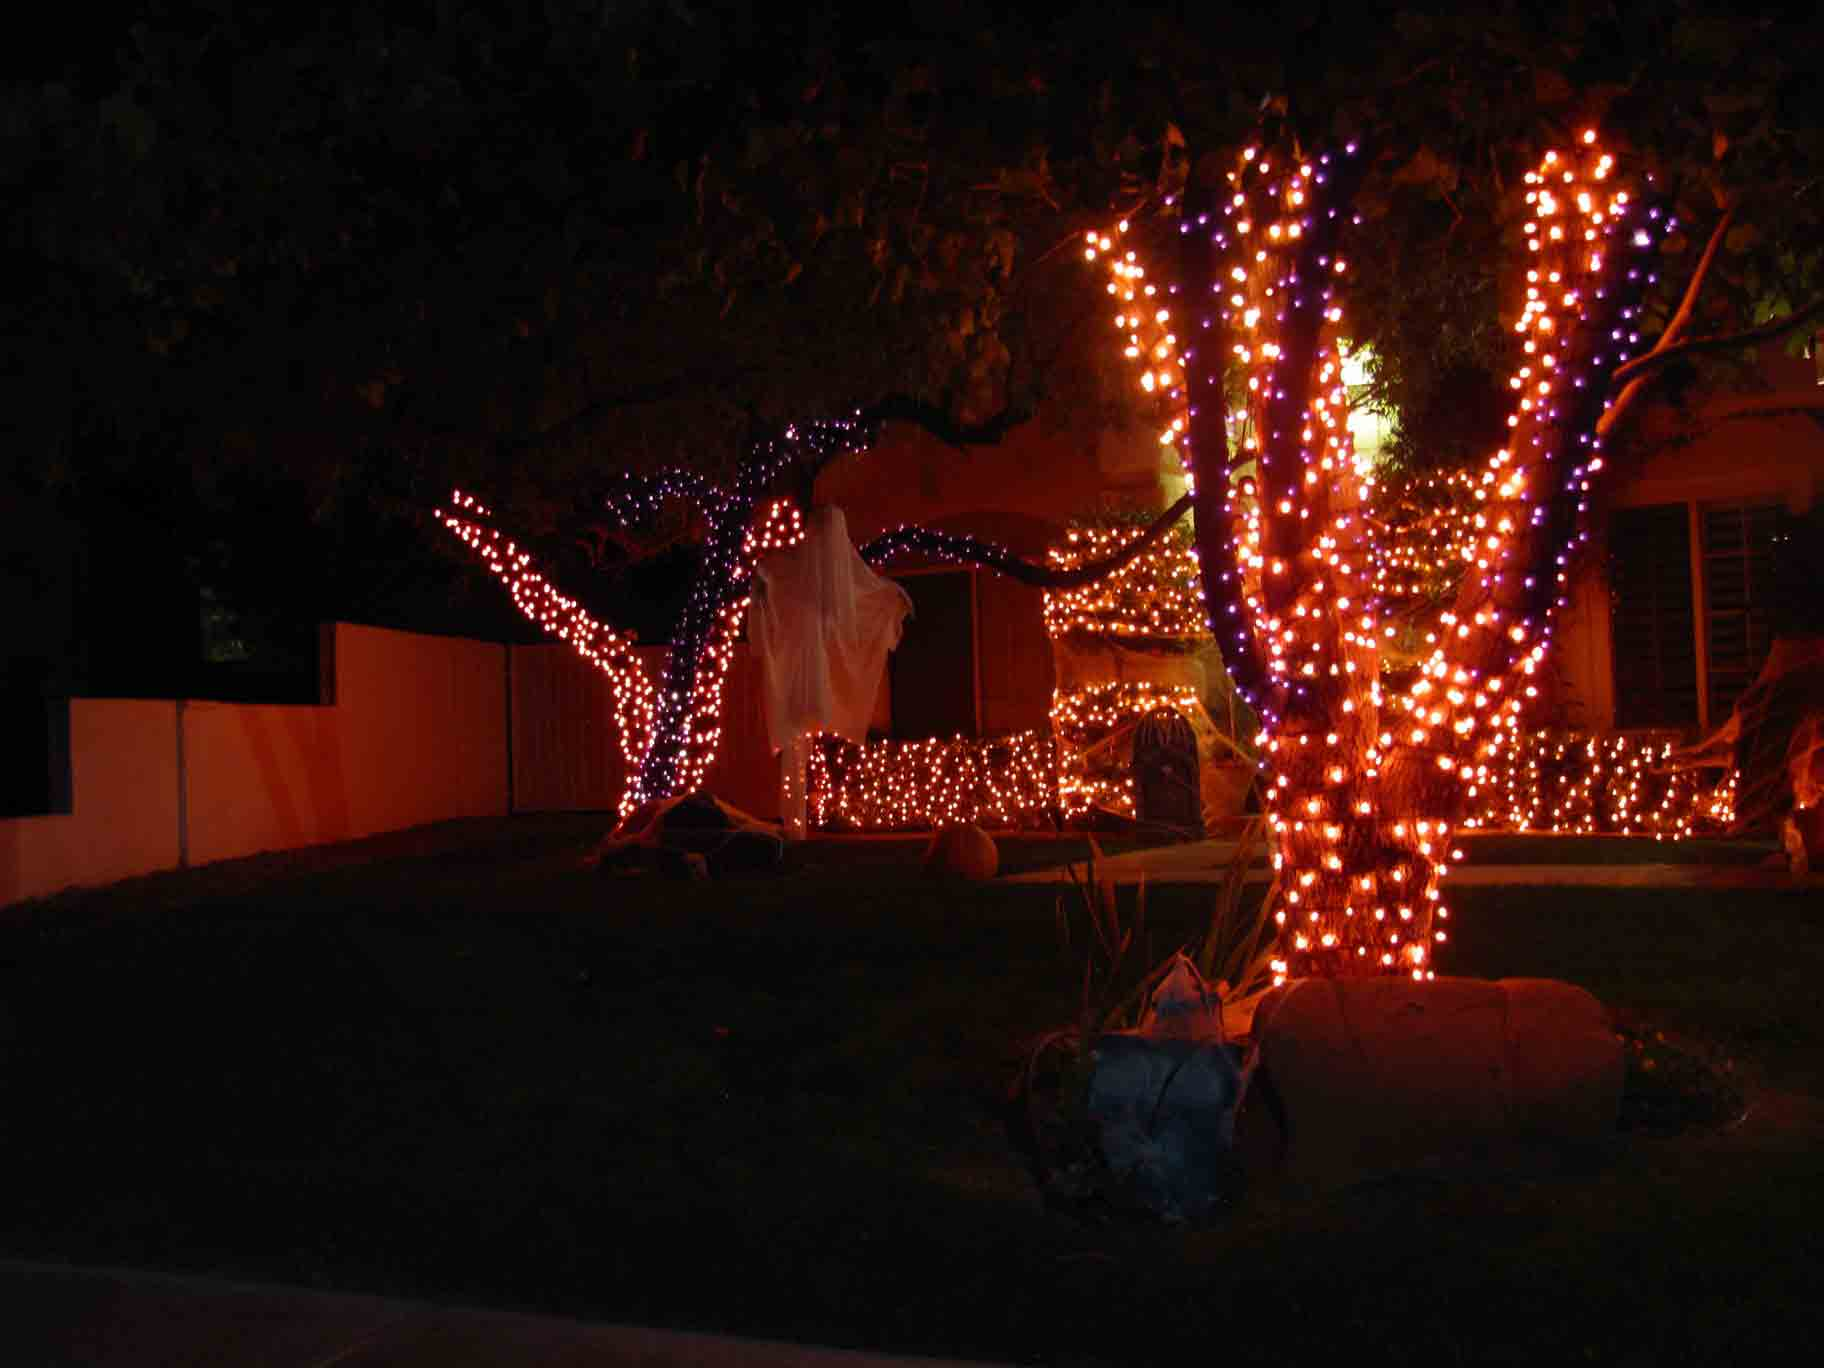 Halloween lighting service by Holiday Decorations in Las Vegas